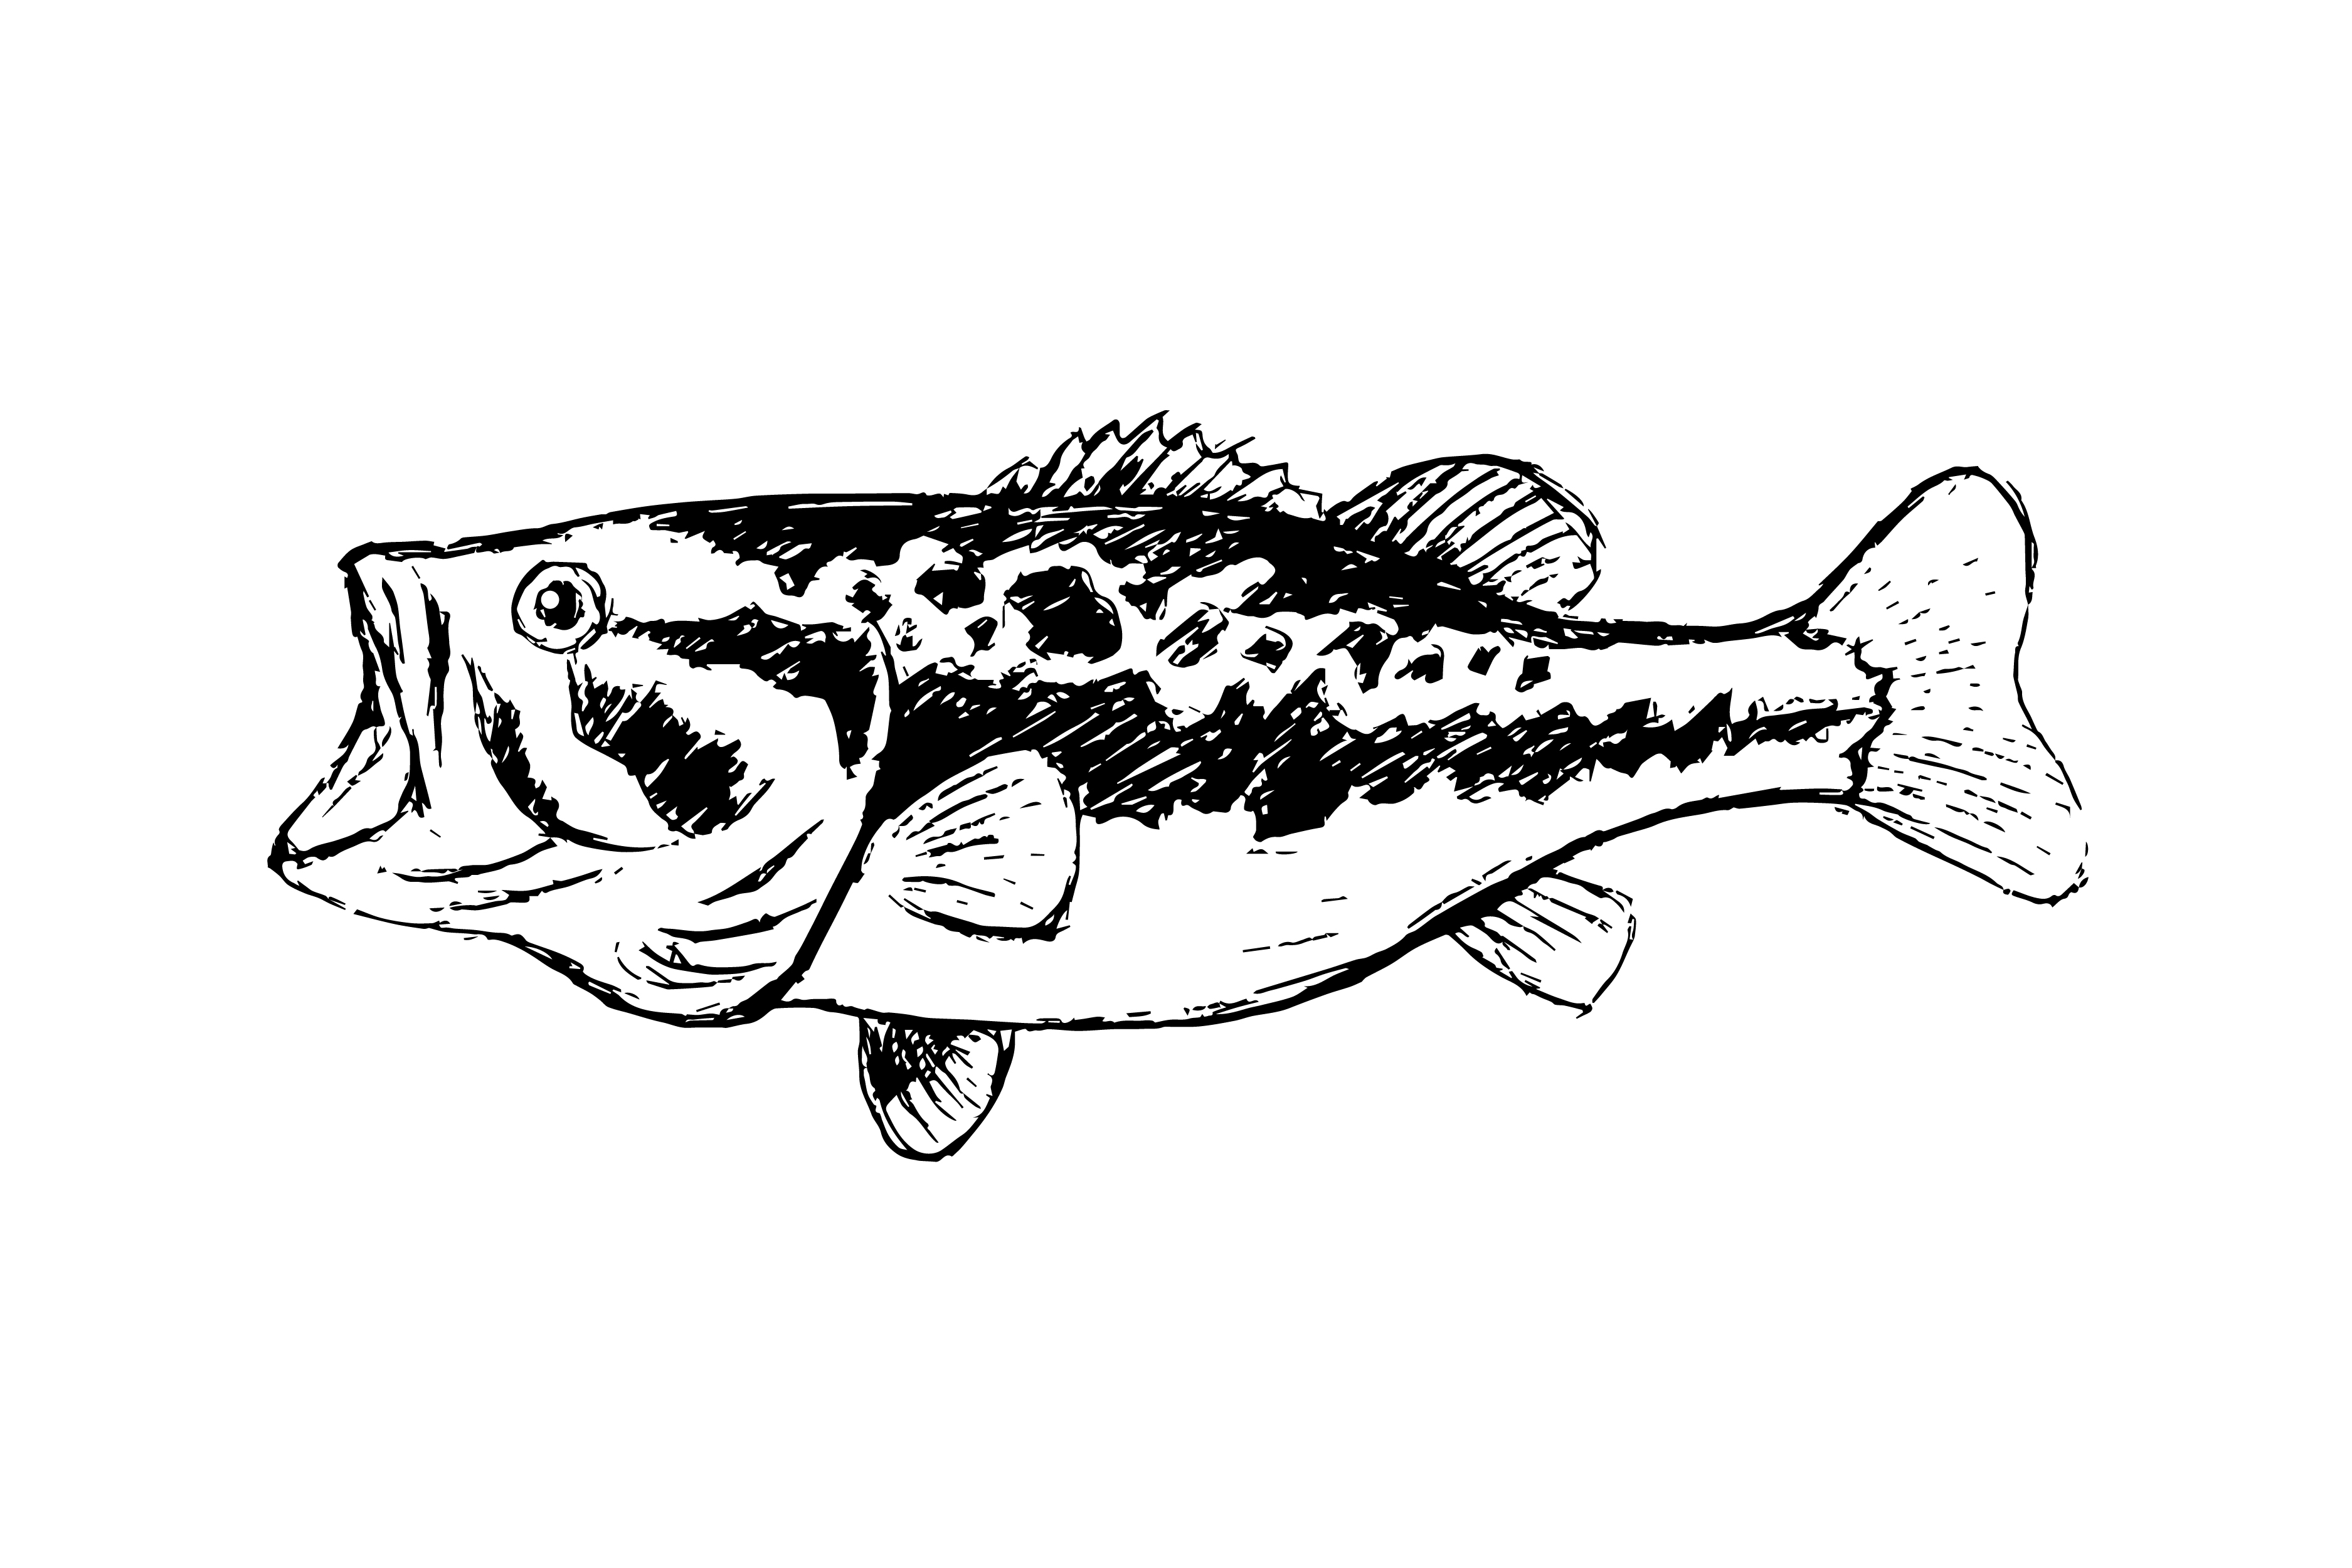 Bass Fish Line Drawing Style On White Background Download Free Vectors Clipart Graphics Vector Art